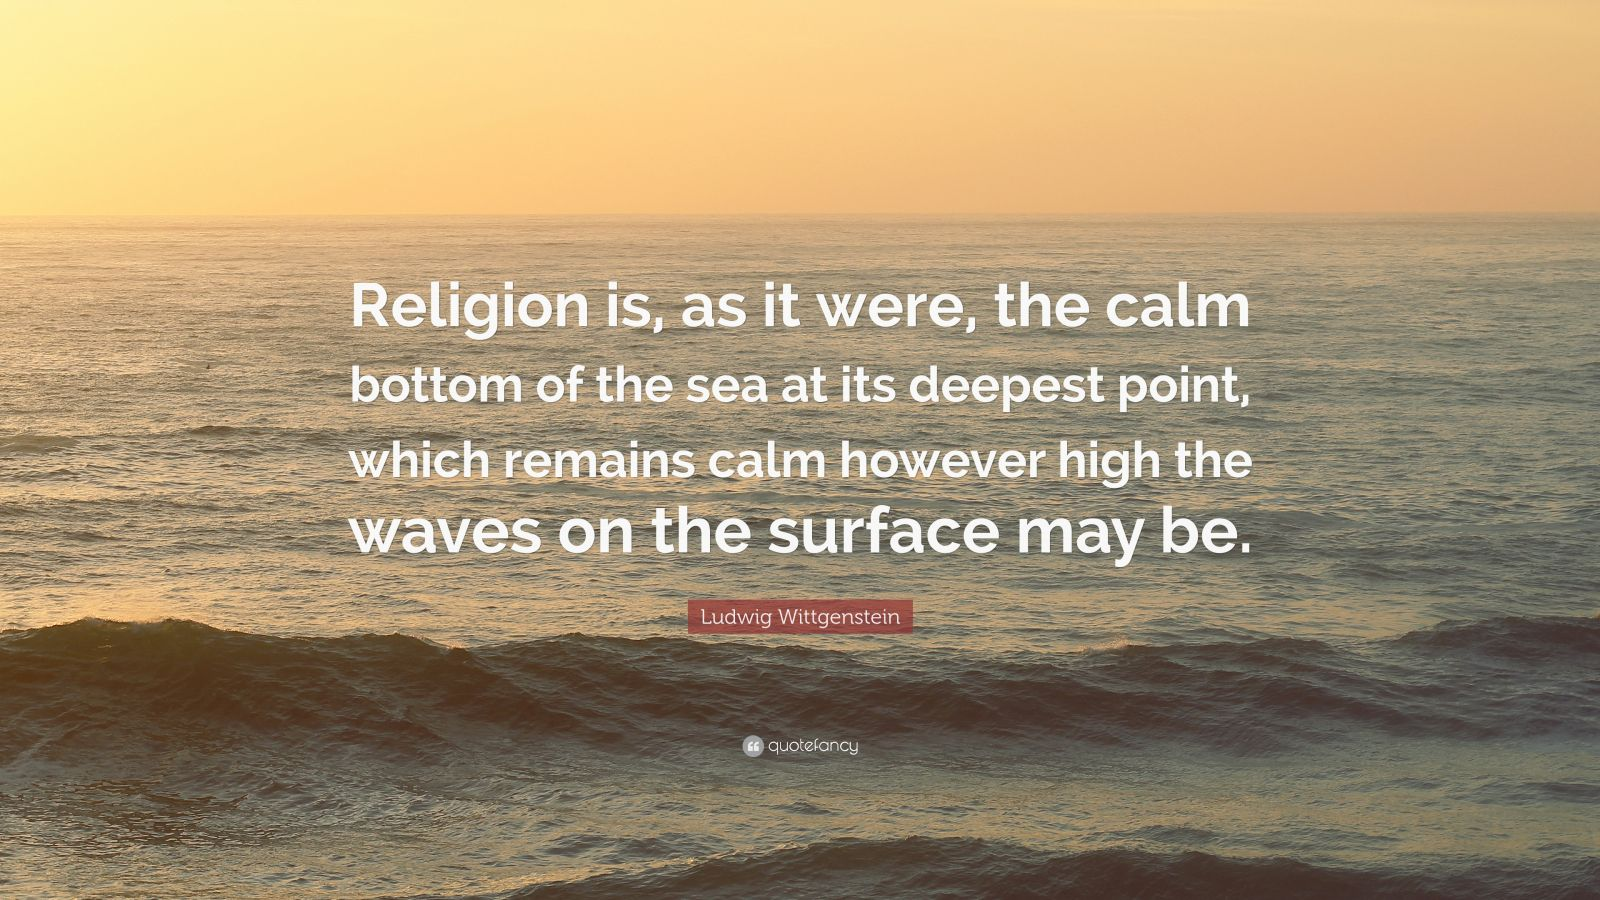 """Ludwig Wittgenstein Quote: """"Religion is, as it were, the calm bottom of the sea at its deepest point, which remains calm however high the waves on the surface may be."""""""